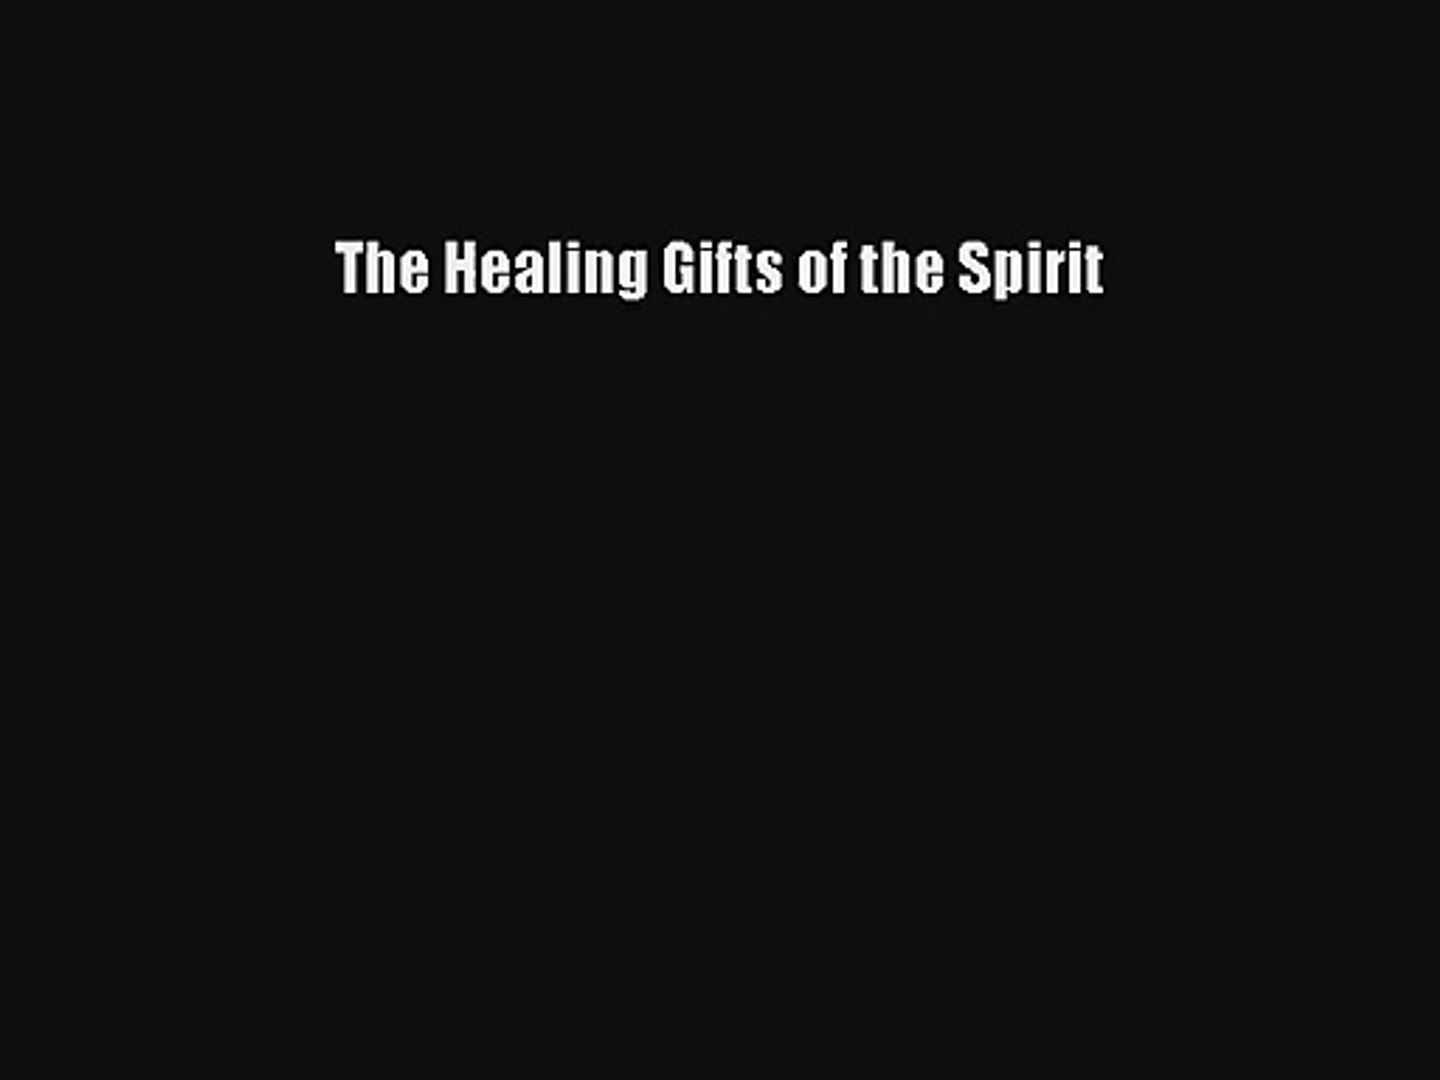 The Healing Gifts of the Spirit [PDF] Full Ebook